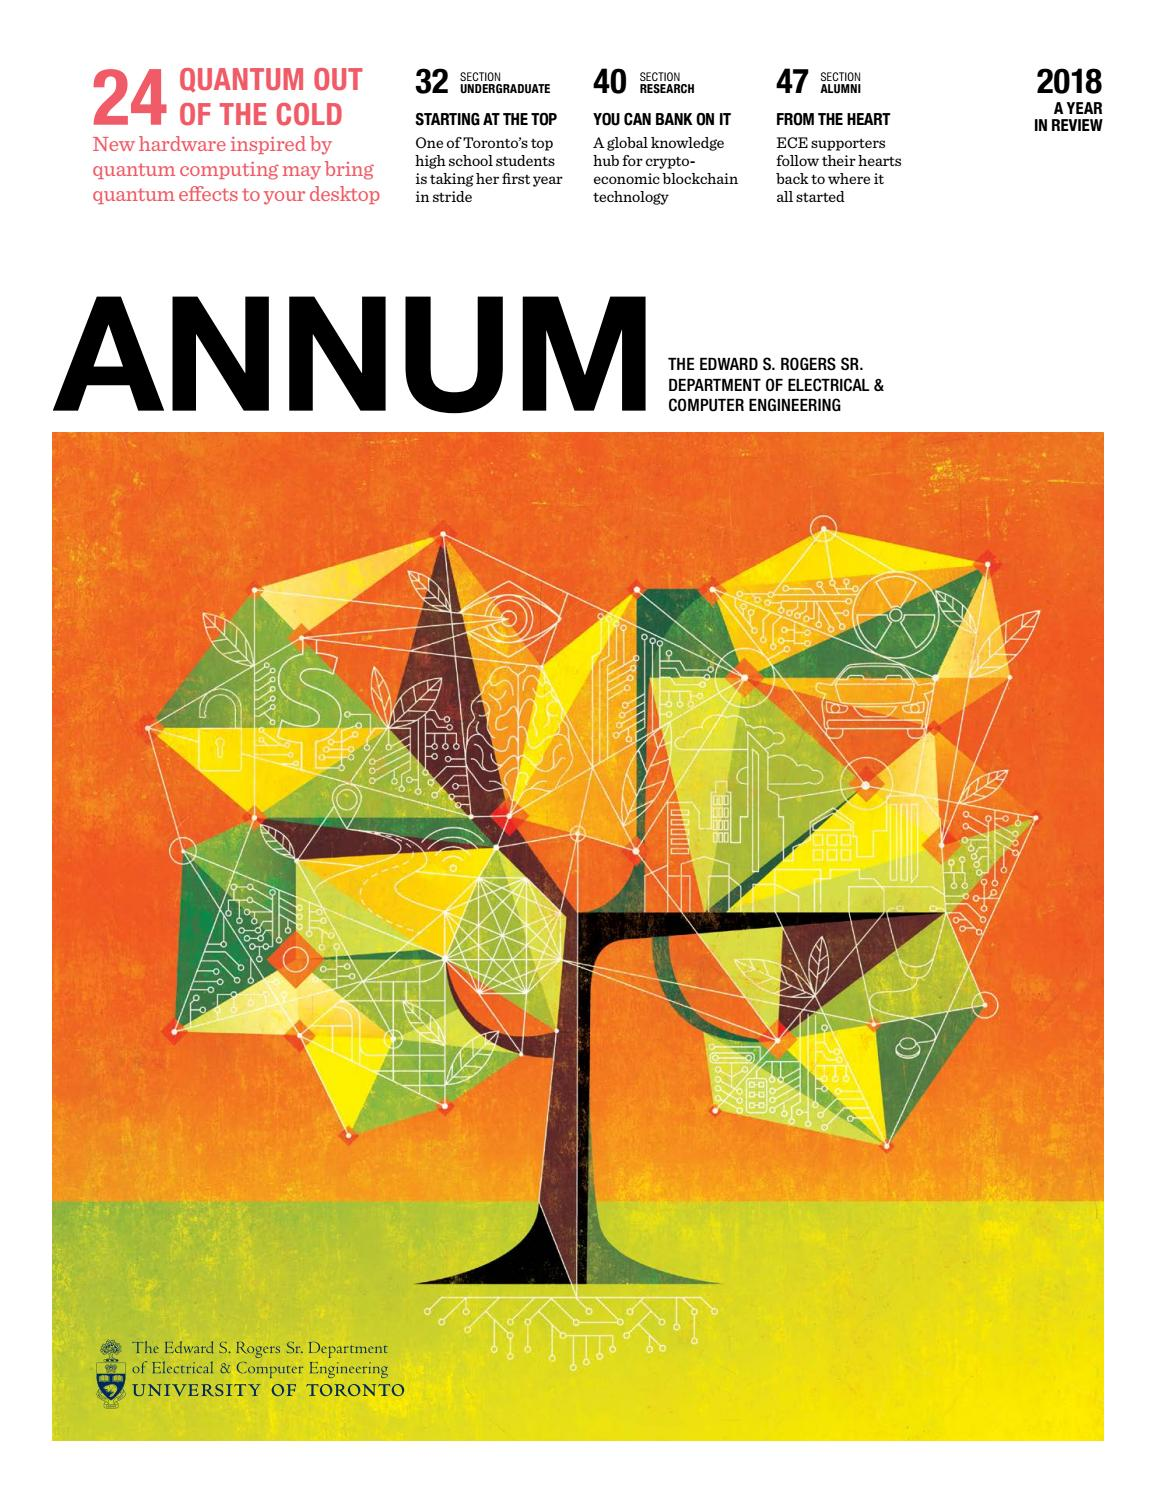 ANNUM 2018 by University of Toronto Faculty of Applied